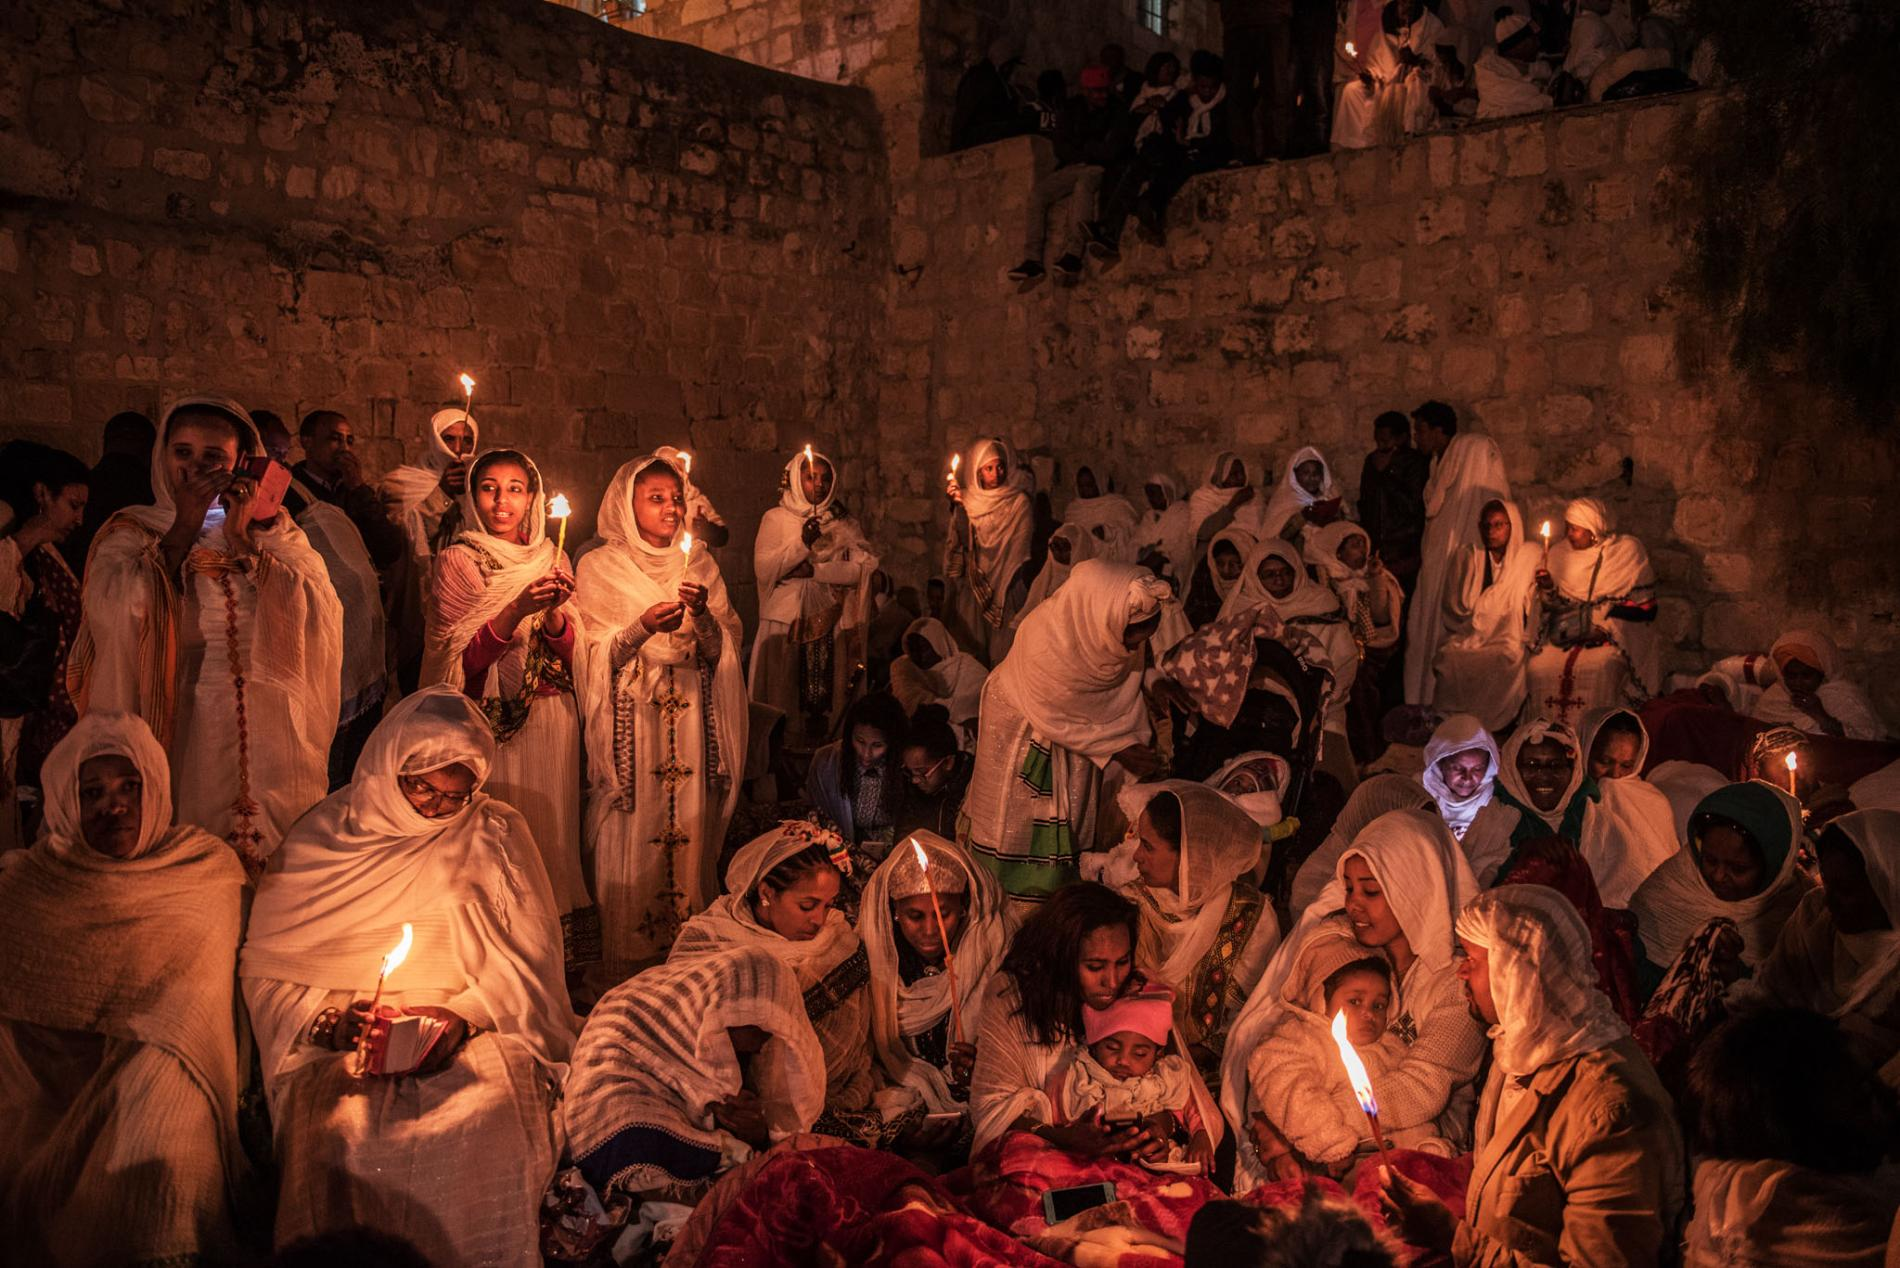 57 Pictures of the year - Natgeo - Tinhte.vn 48.jpg